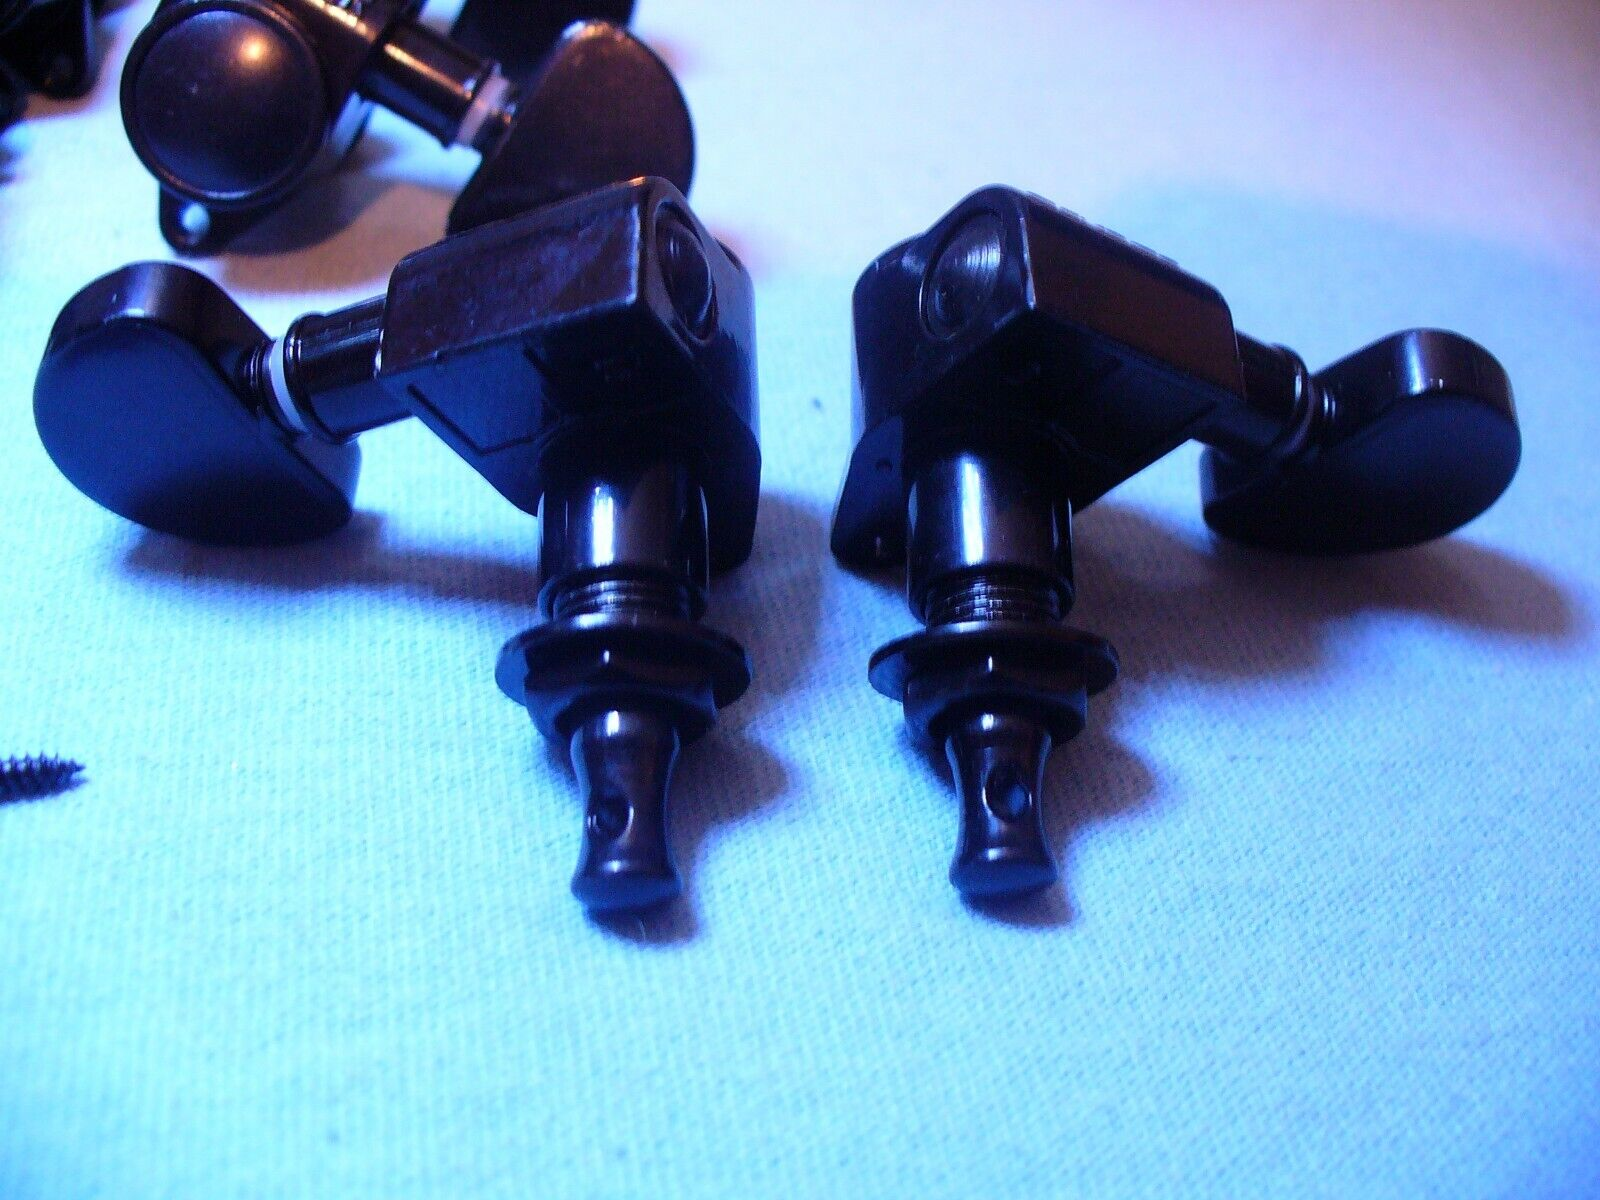 BLACK GROVER TUNERS 3X3 SET ELECTRIC ACOUSTIC GUITAR MACHINE HEAD TUNING PEGS  - $42.95